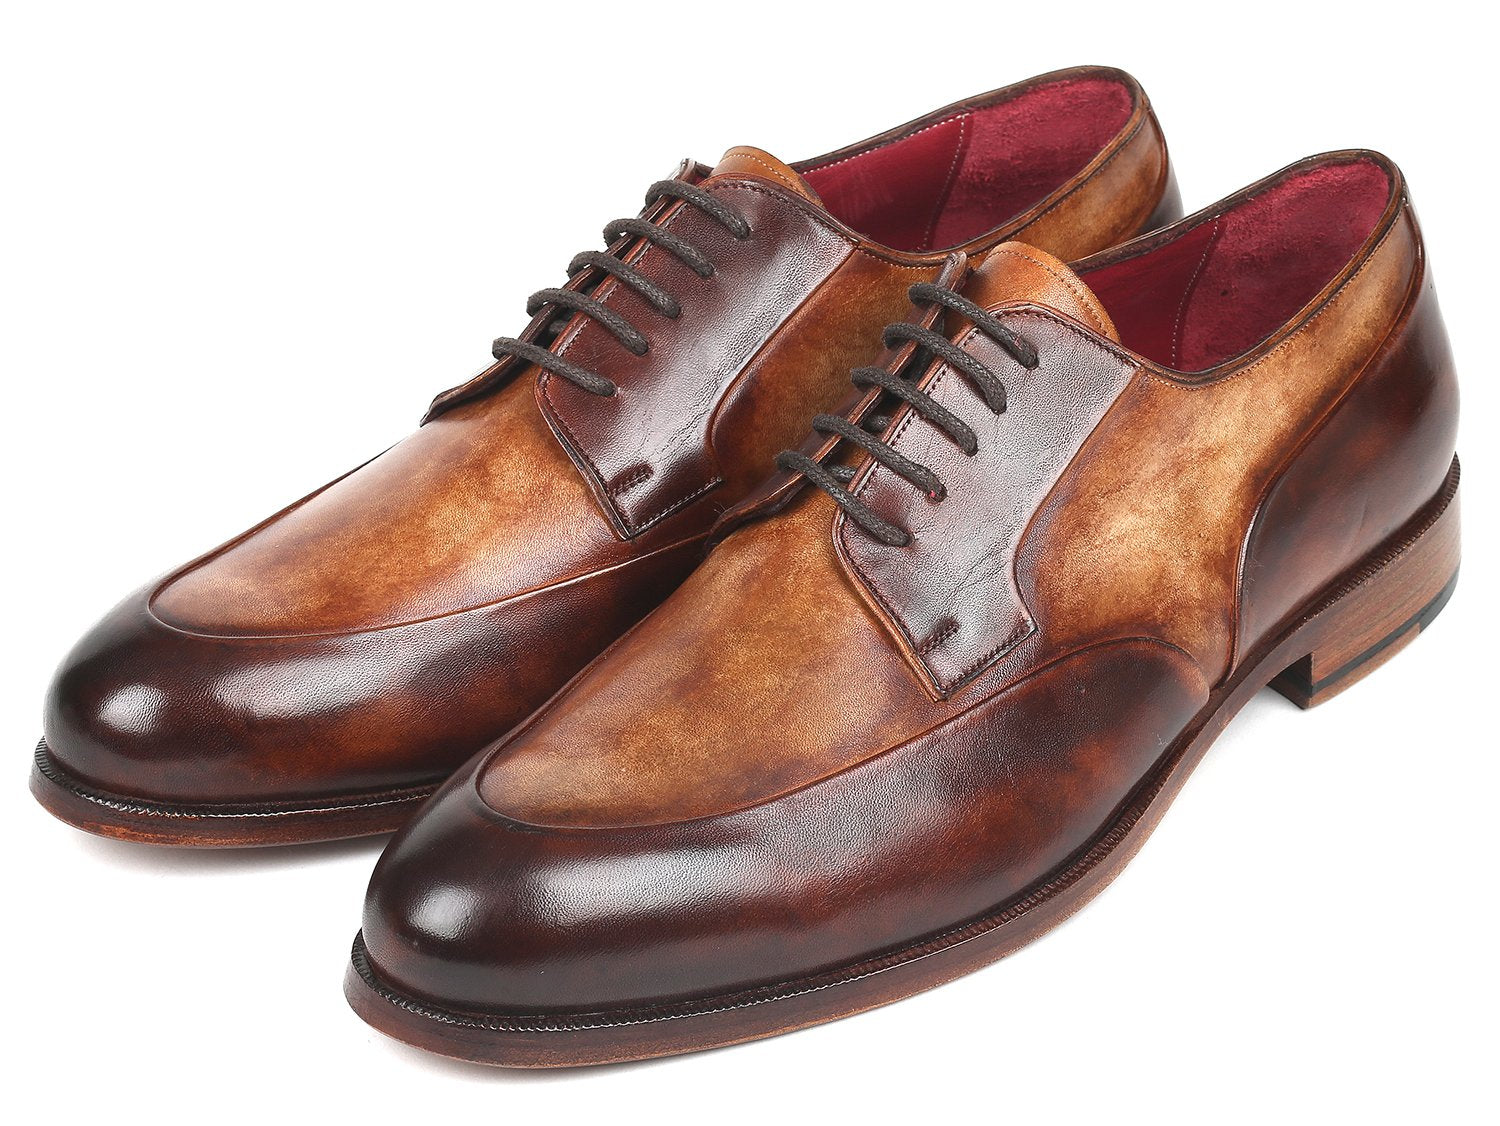 Paul Parkman Men's Dual Tone Brown Derby Shoes (ID#995-BRW)